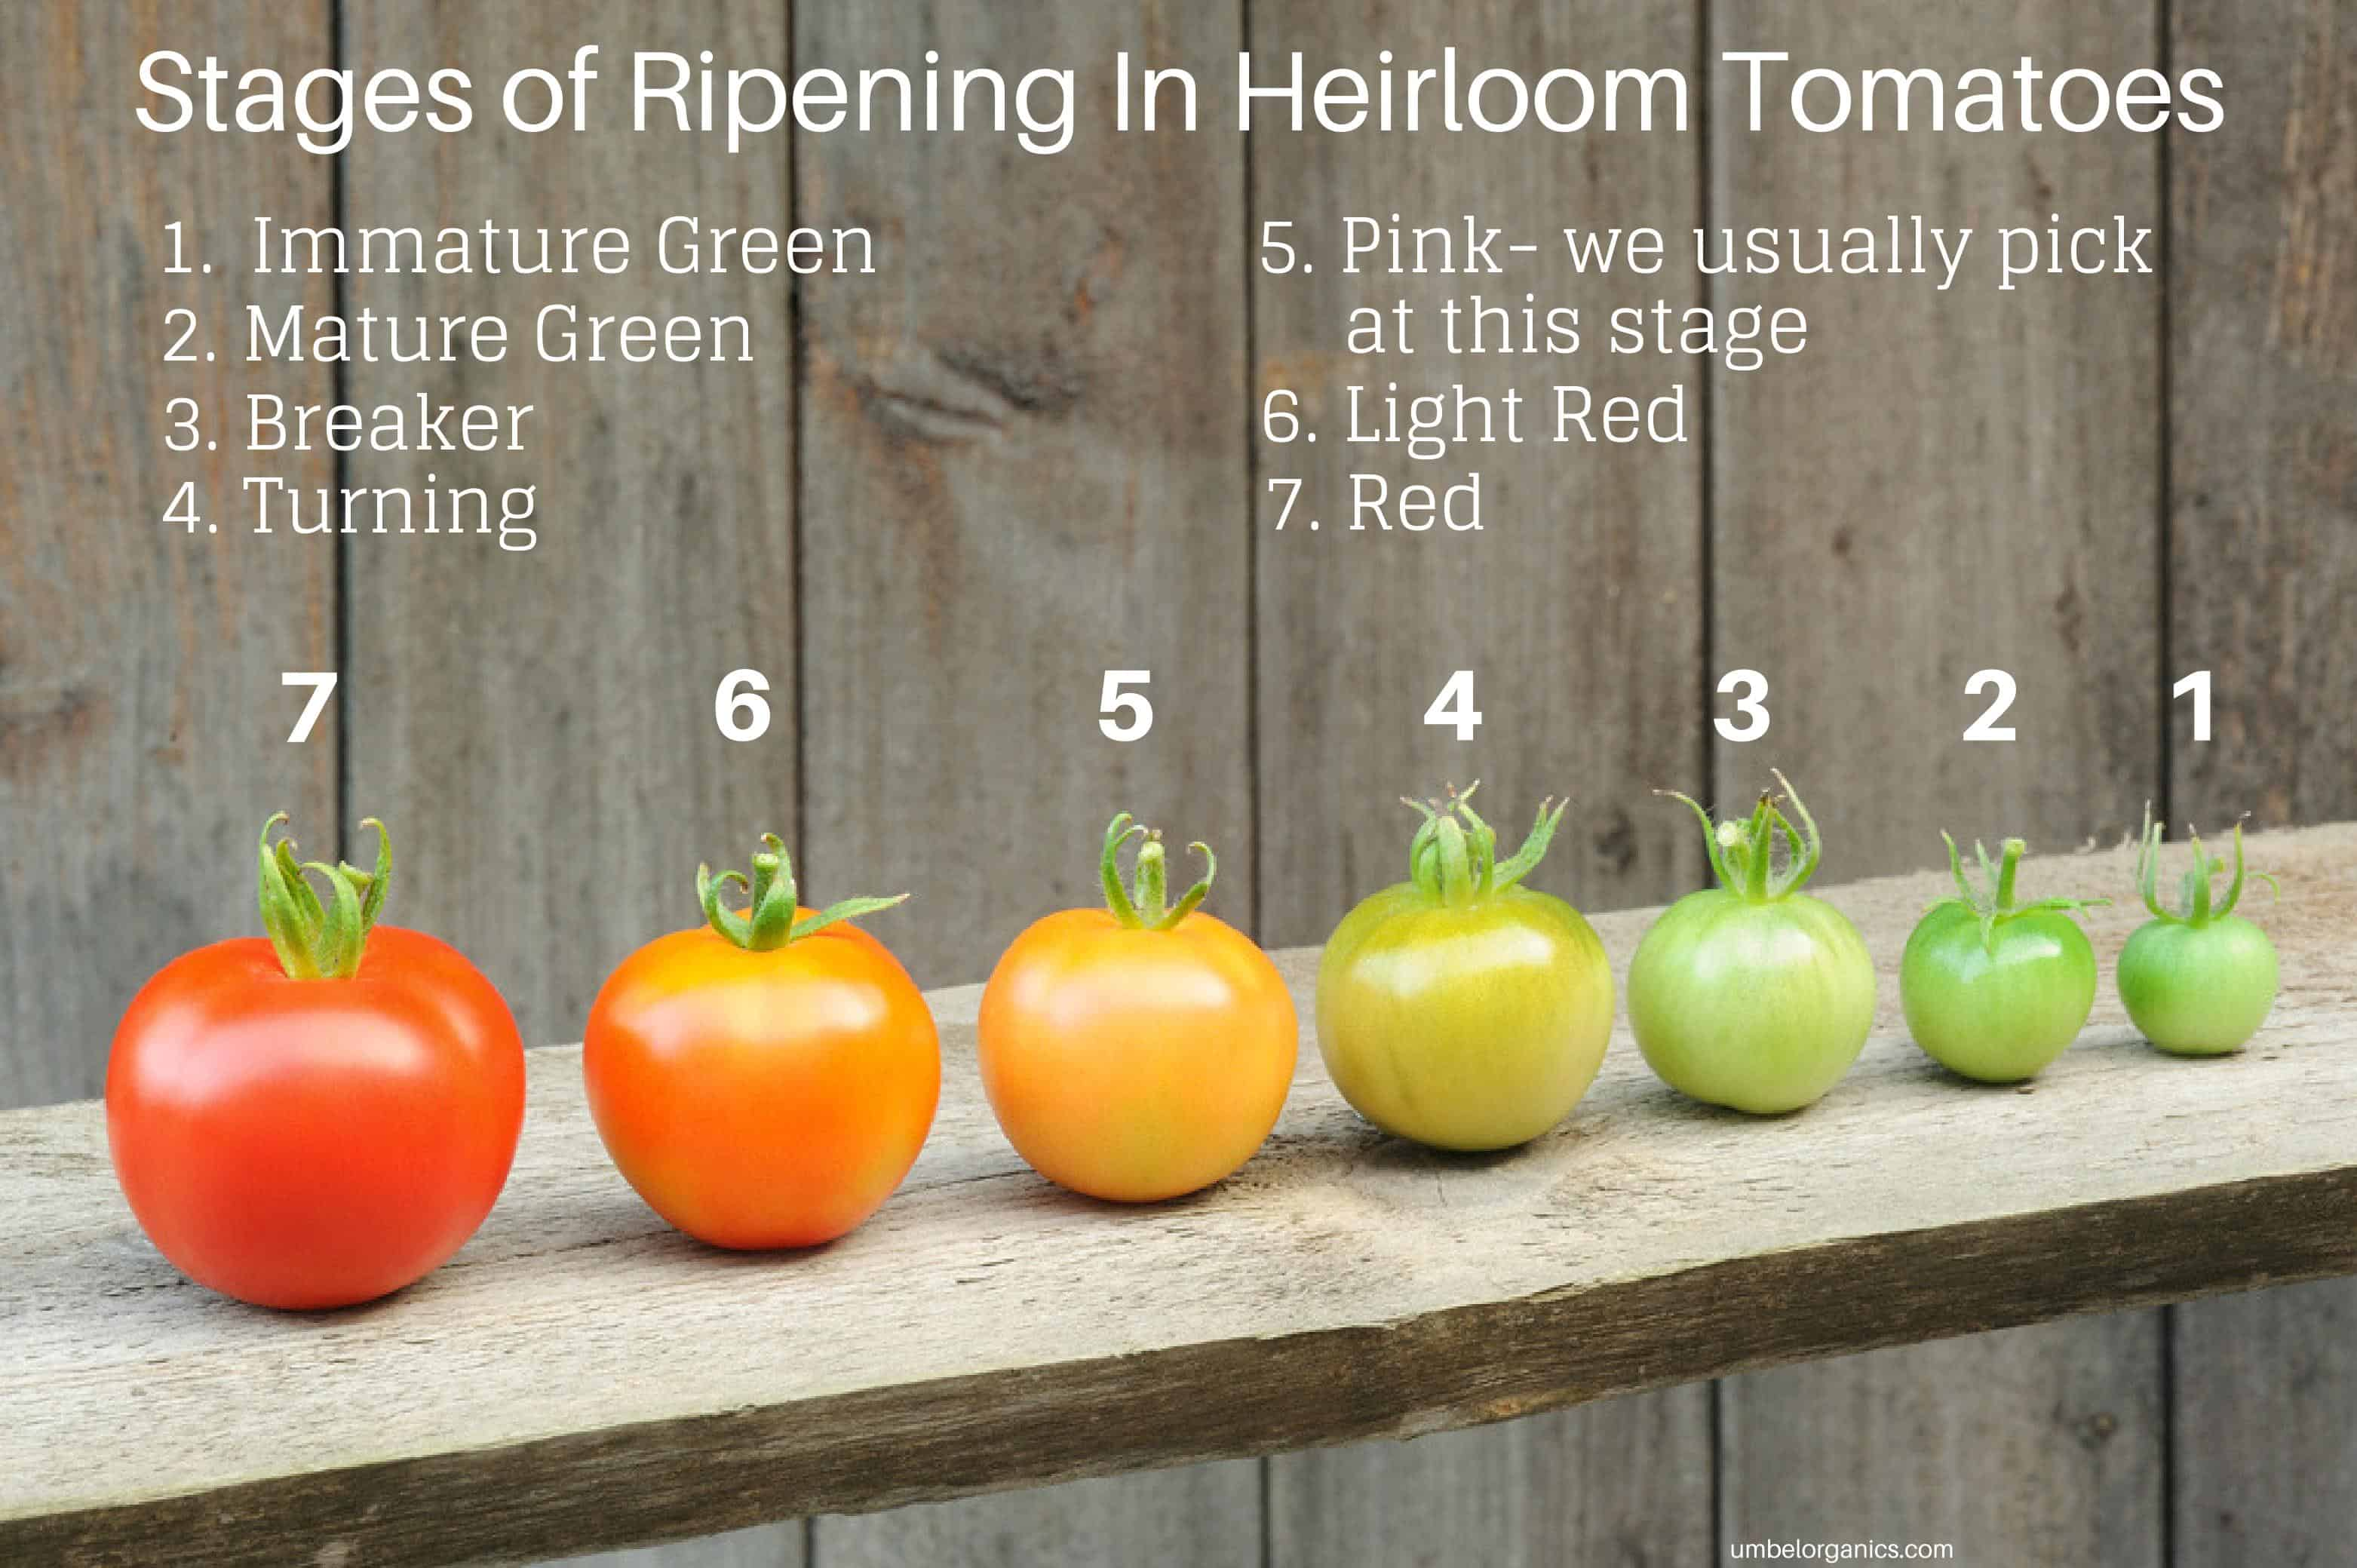 The stages of tomato ripening (1-7), from green tomato to red tomato